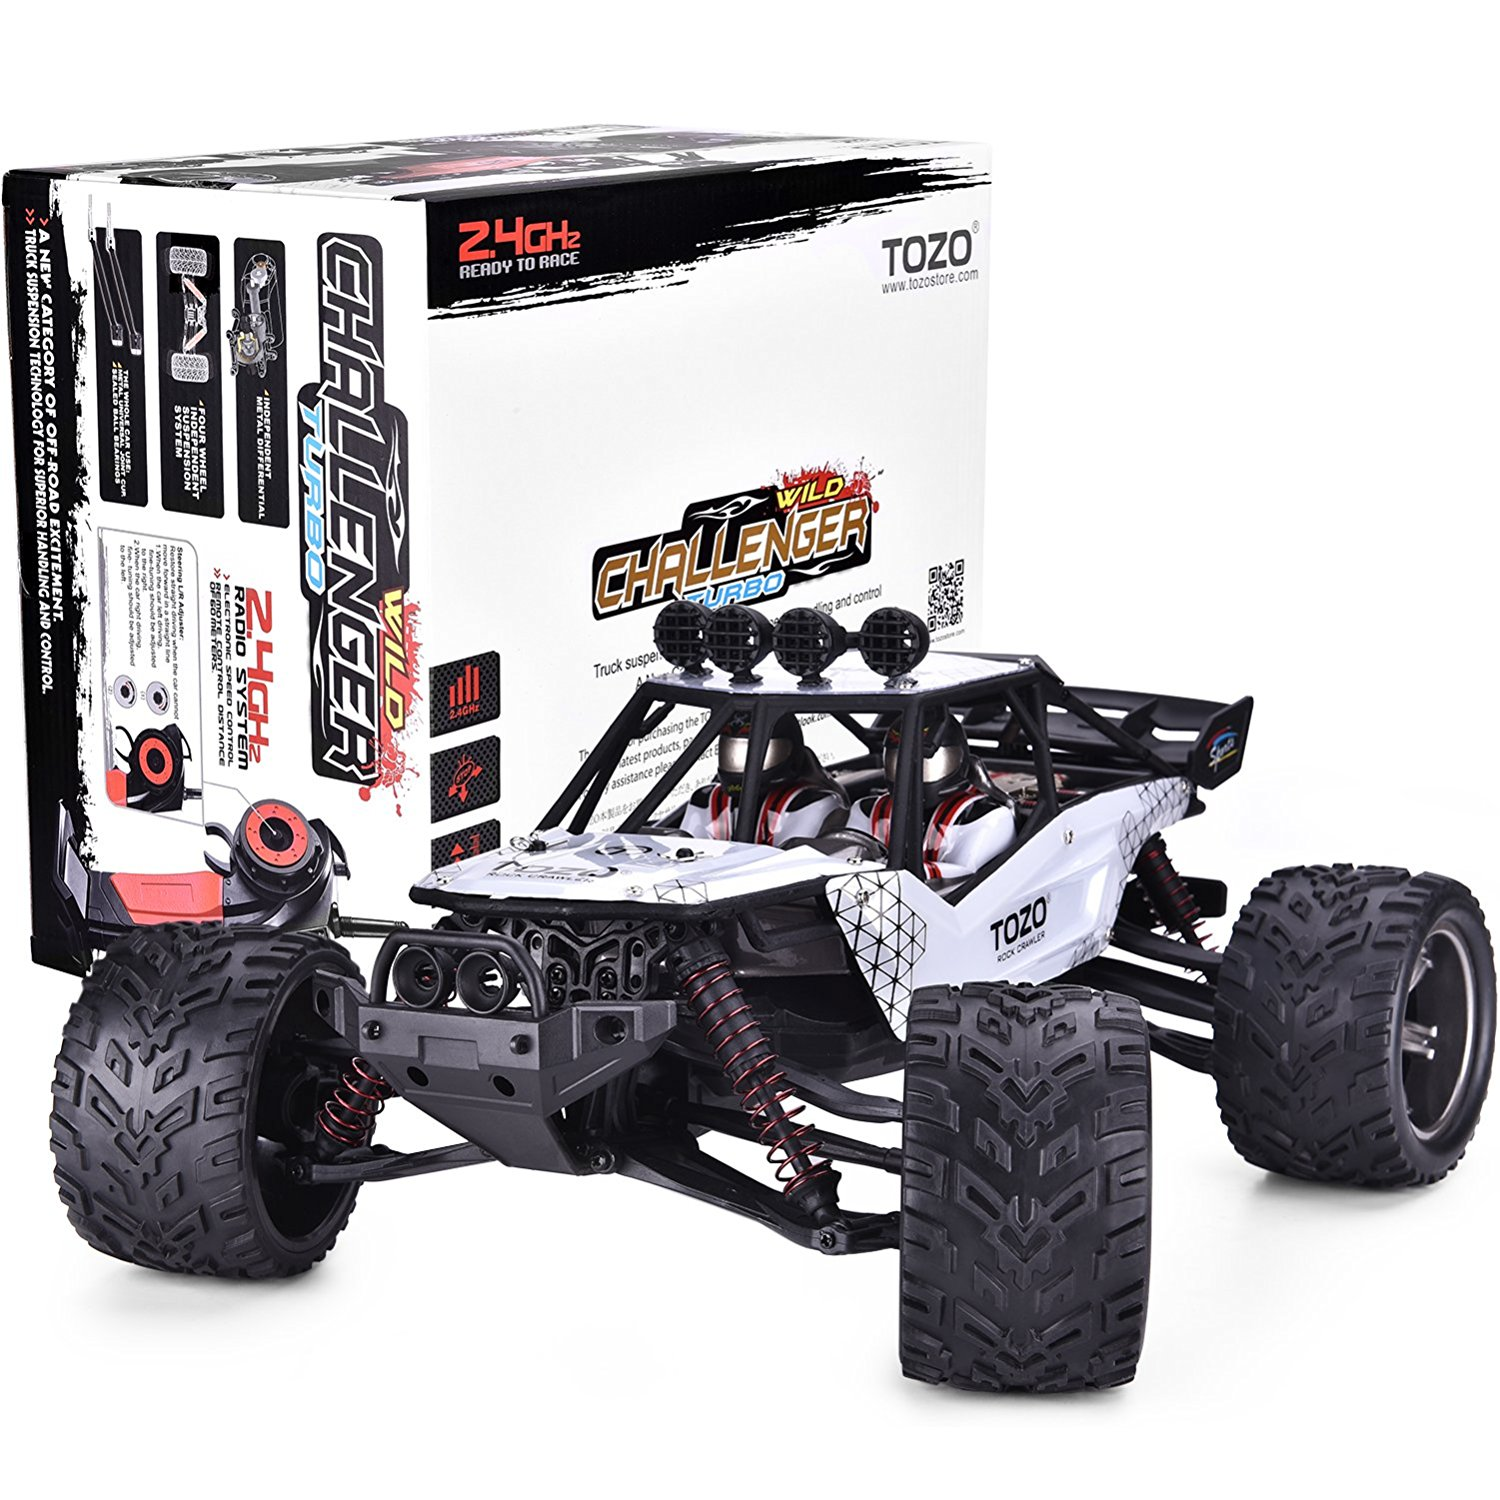 Us Tozo C2035 Rc Cars High Speed 30mph 1 12 Scale Rtr Remote Control